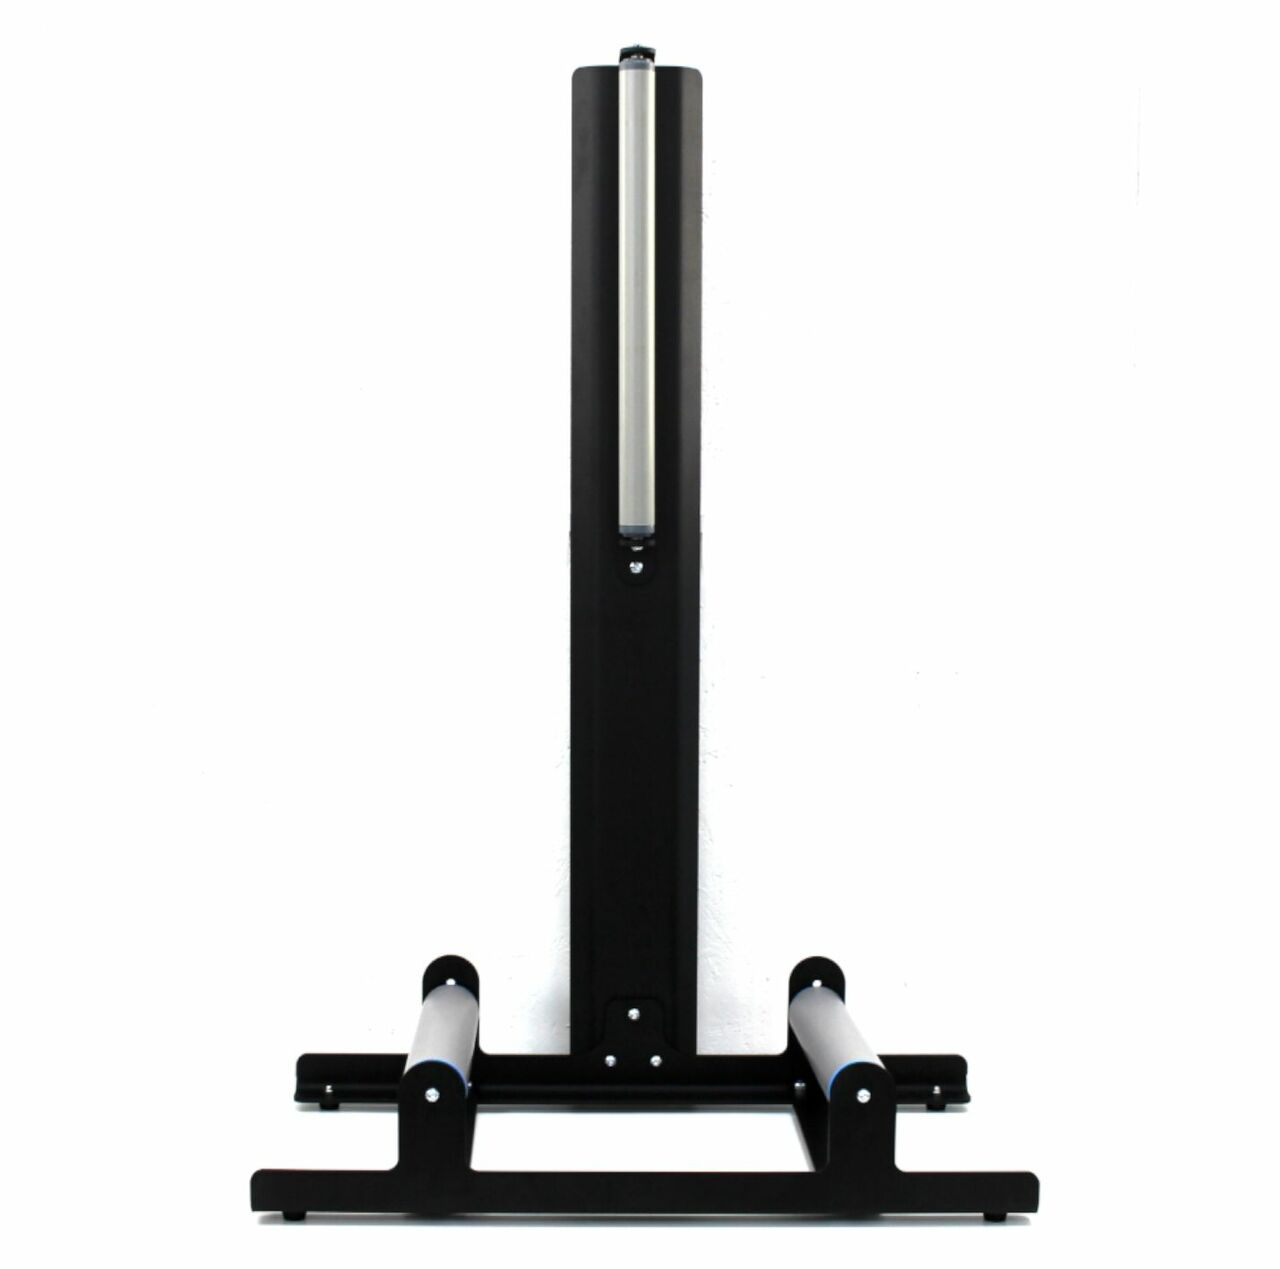 Poka Premium Wheel Stands | For Cleaning and Installing Coatings